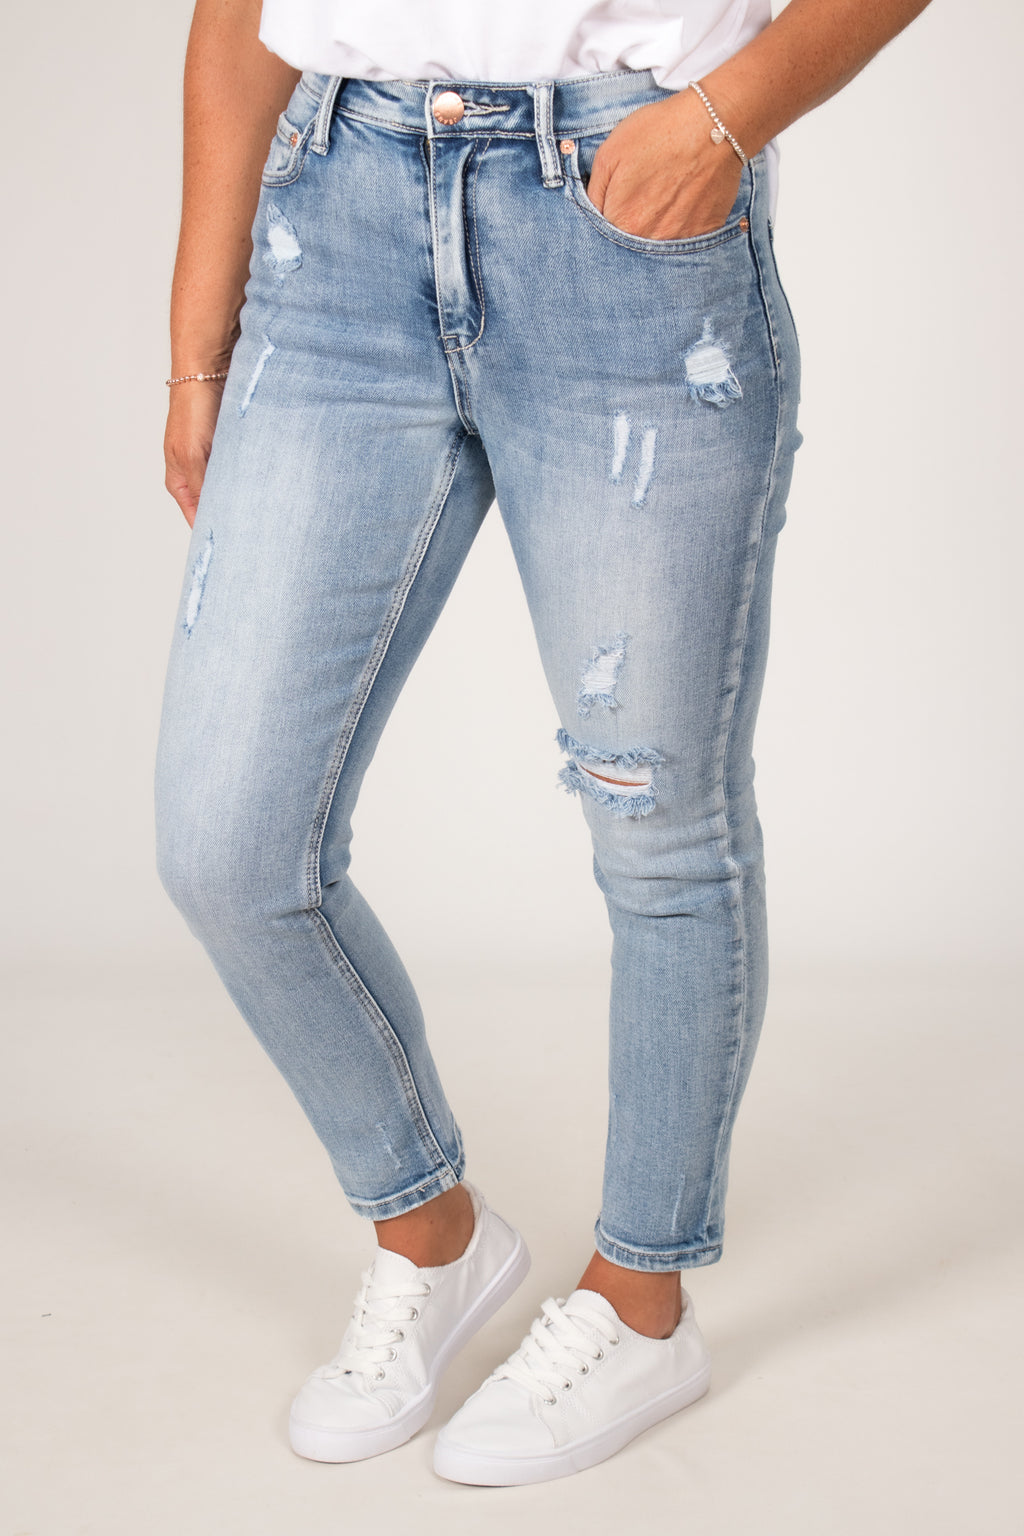 Queen Jeans in Blue Wash